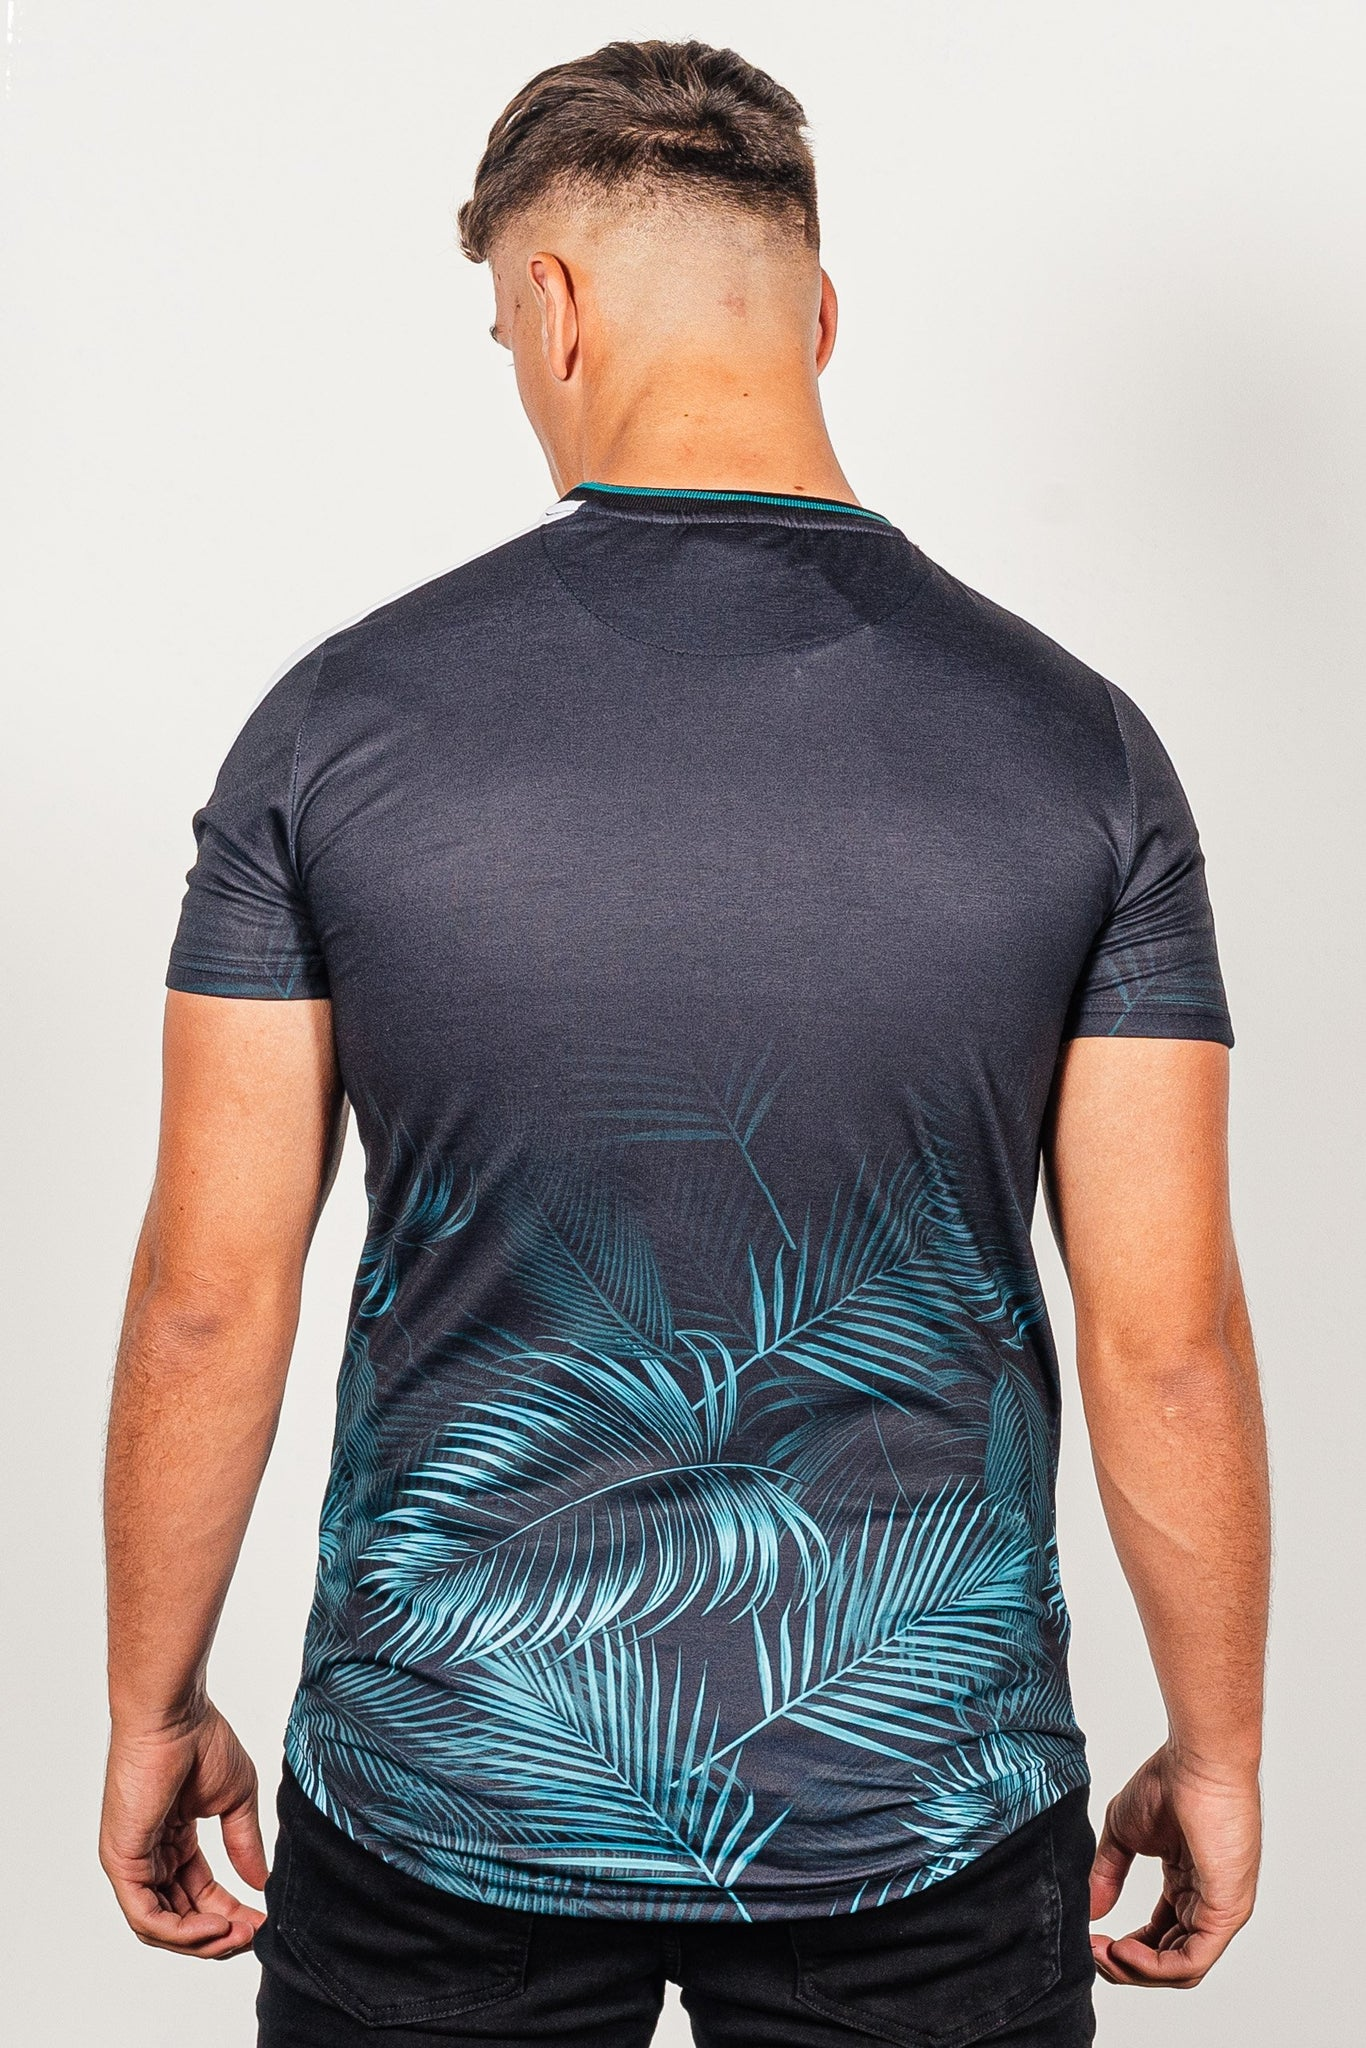 Men's Leaf T-Shirt in Black - DEFEND LONDON